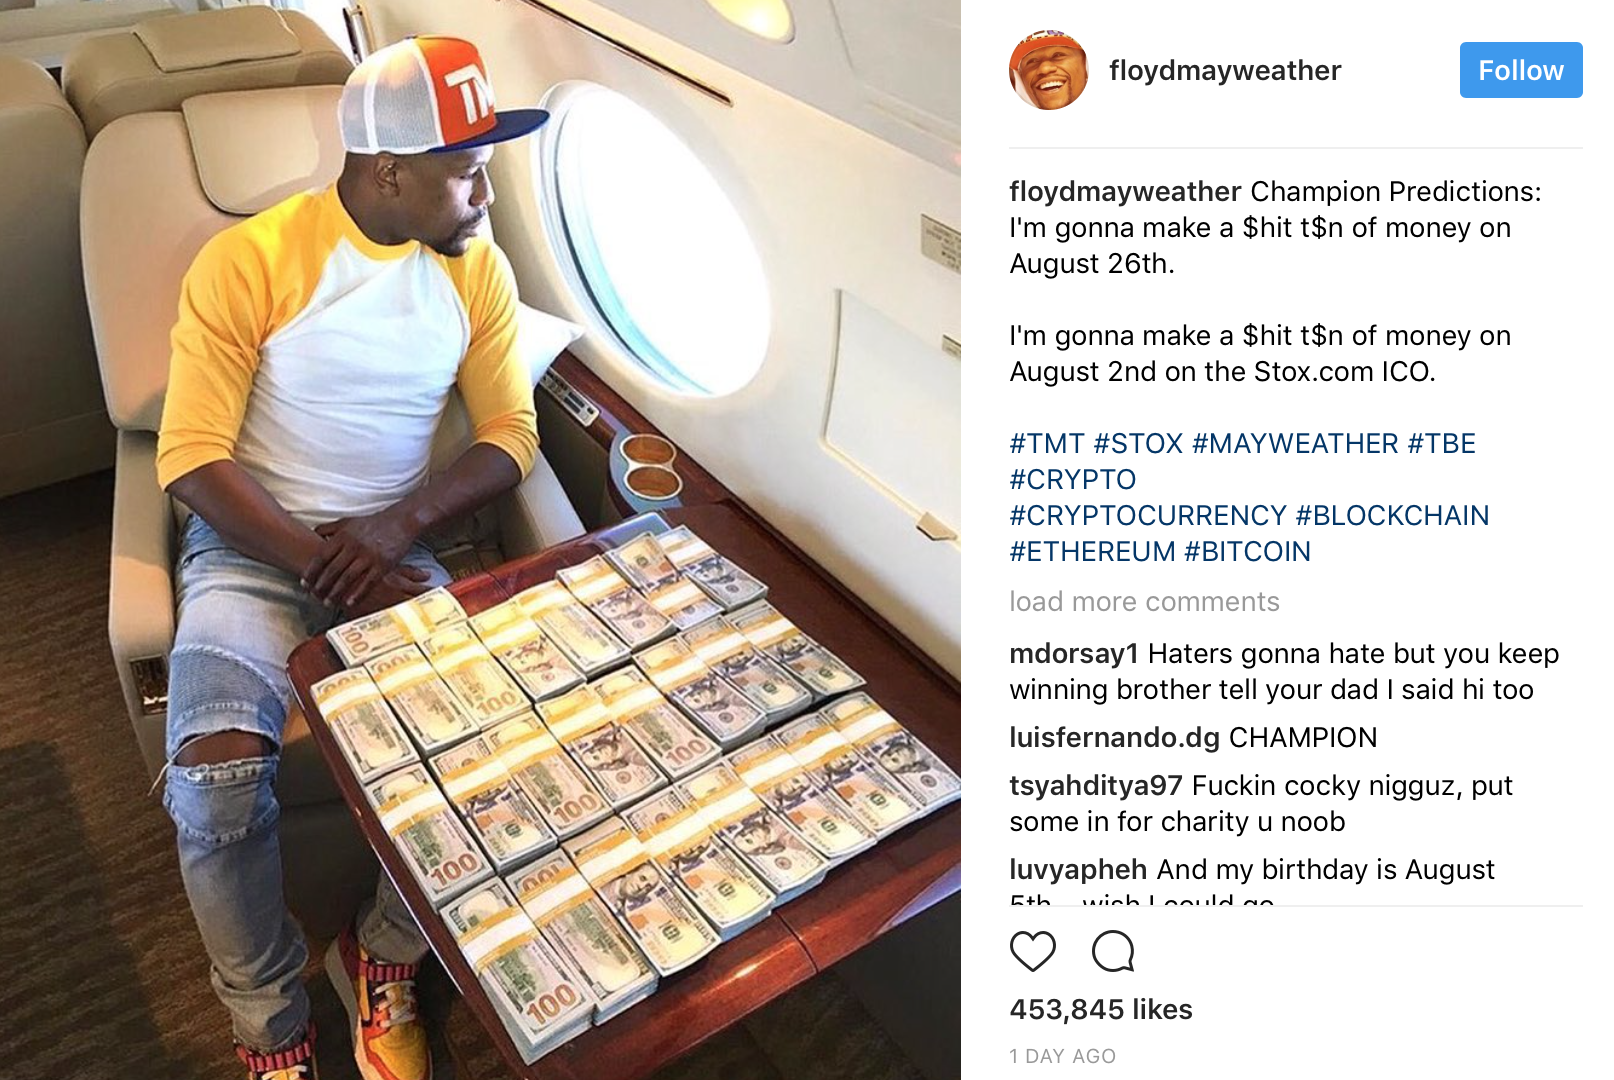 Floyd Mayweather promoting a cryptocurrency on Instagram